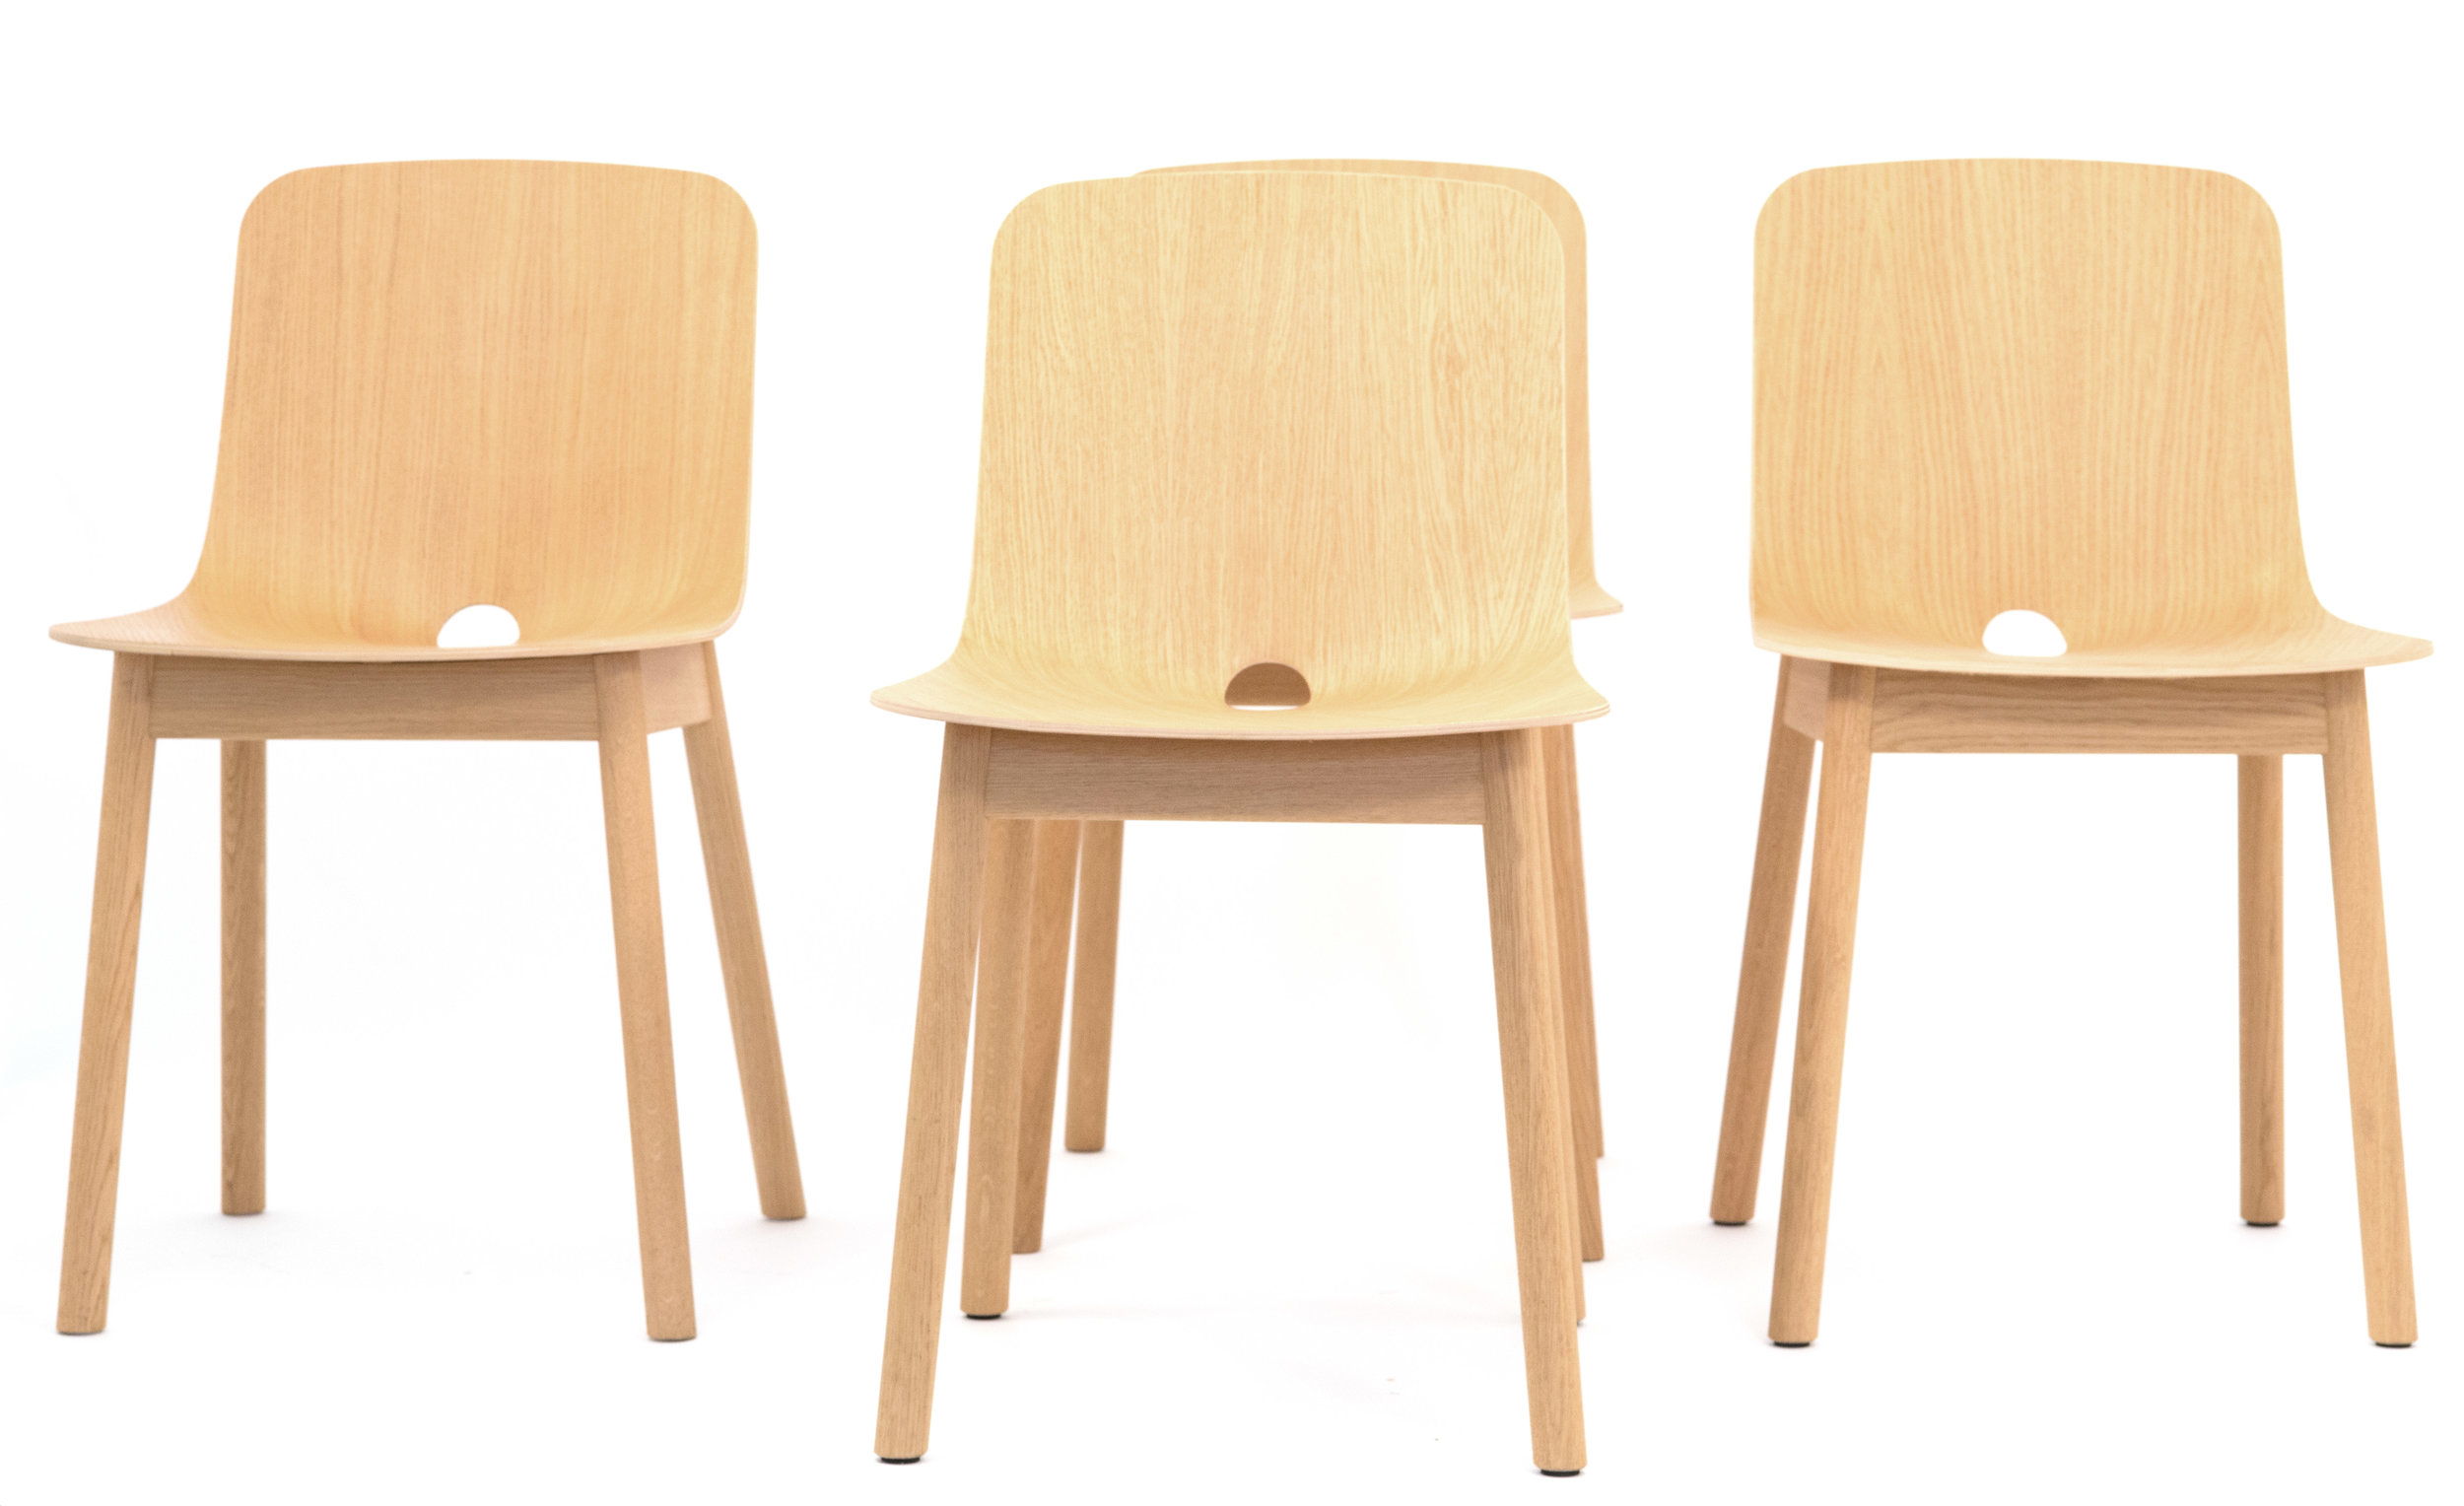 Finish chairs copy.jpg